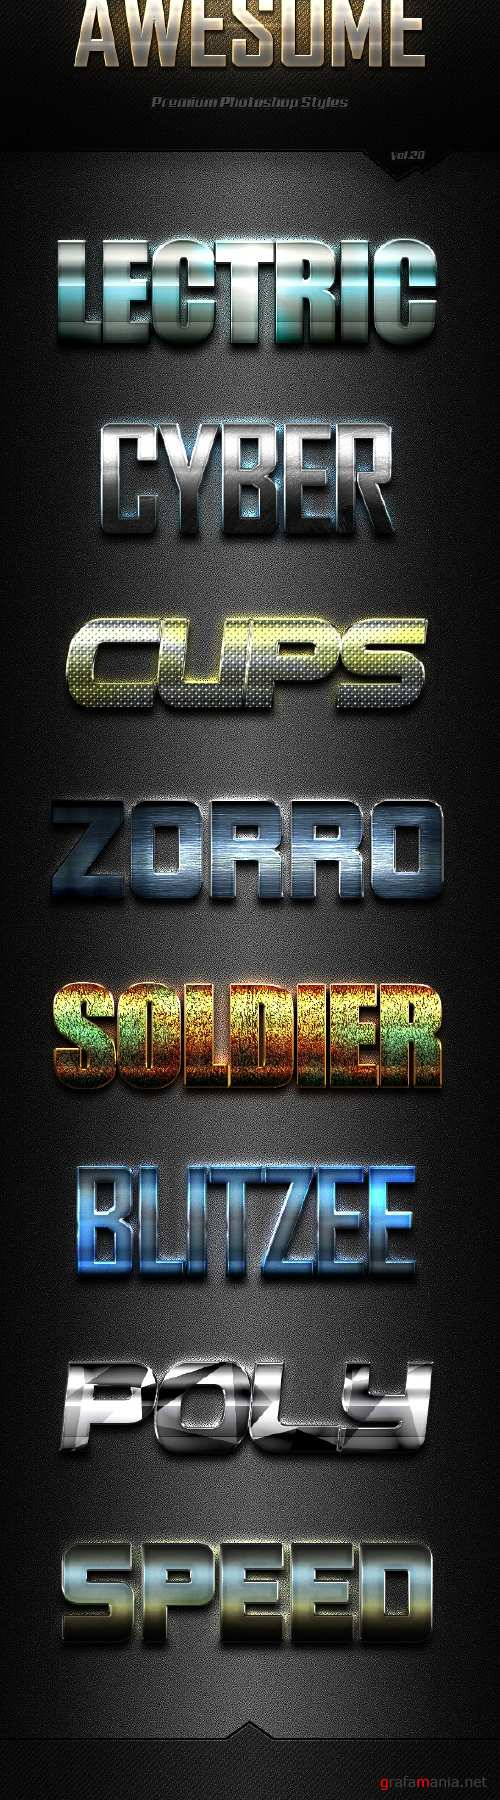 Awesome Photoshop Text Effects Vol.20 - 19158904